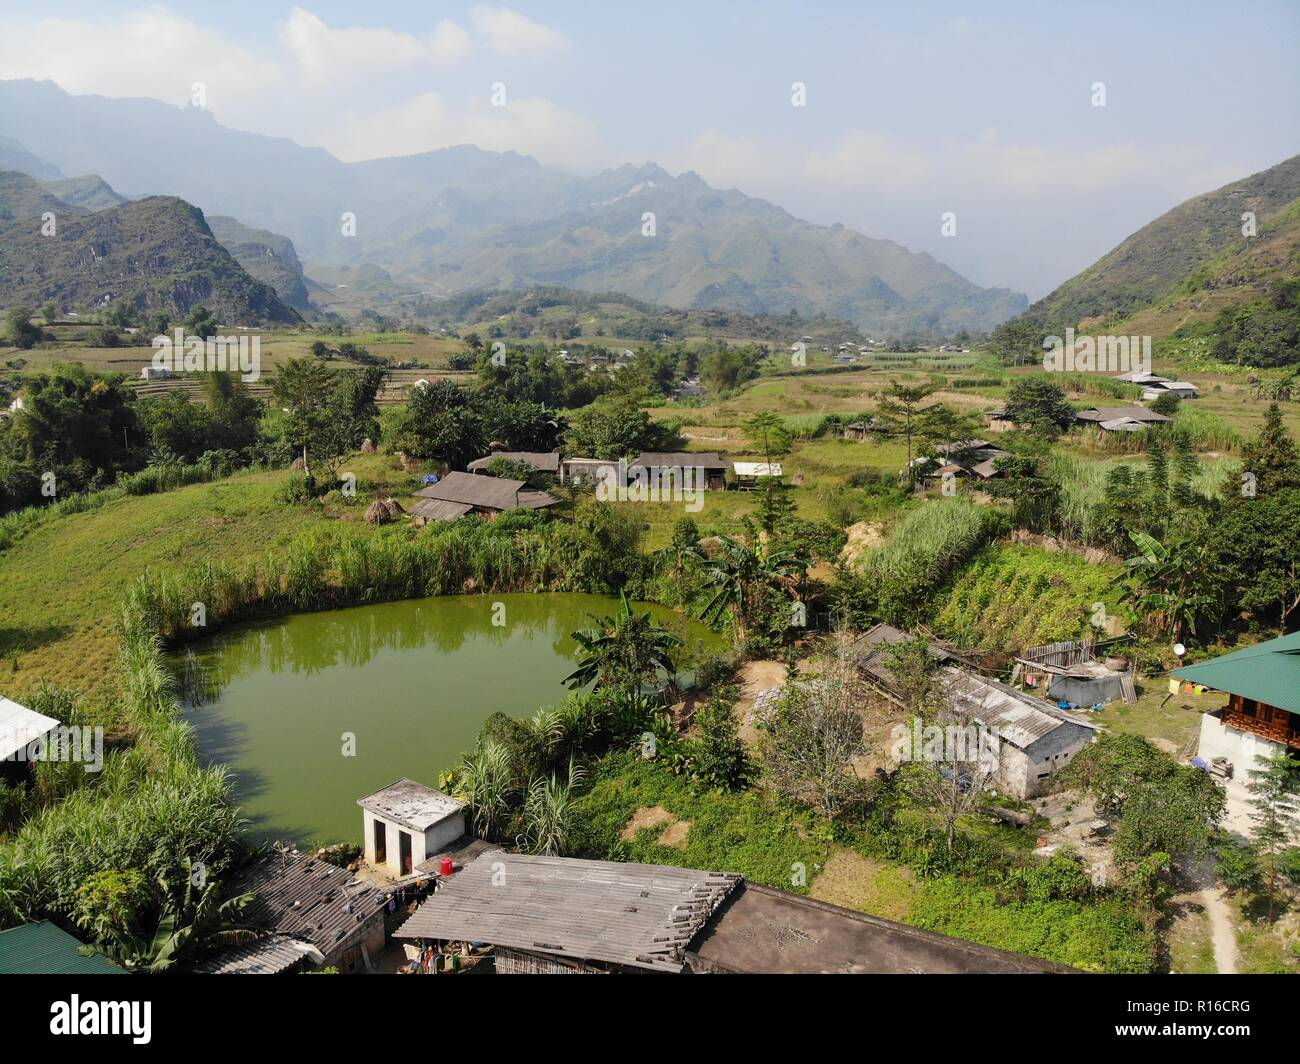 view of the nature in Du Già village in Ha giang province vietnam - Stock Image